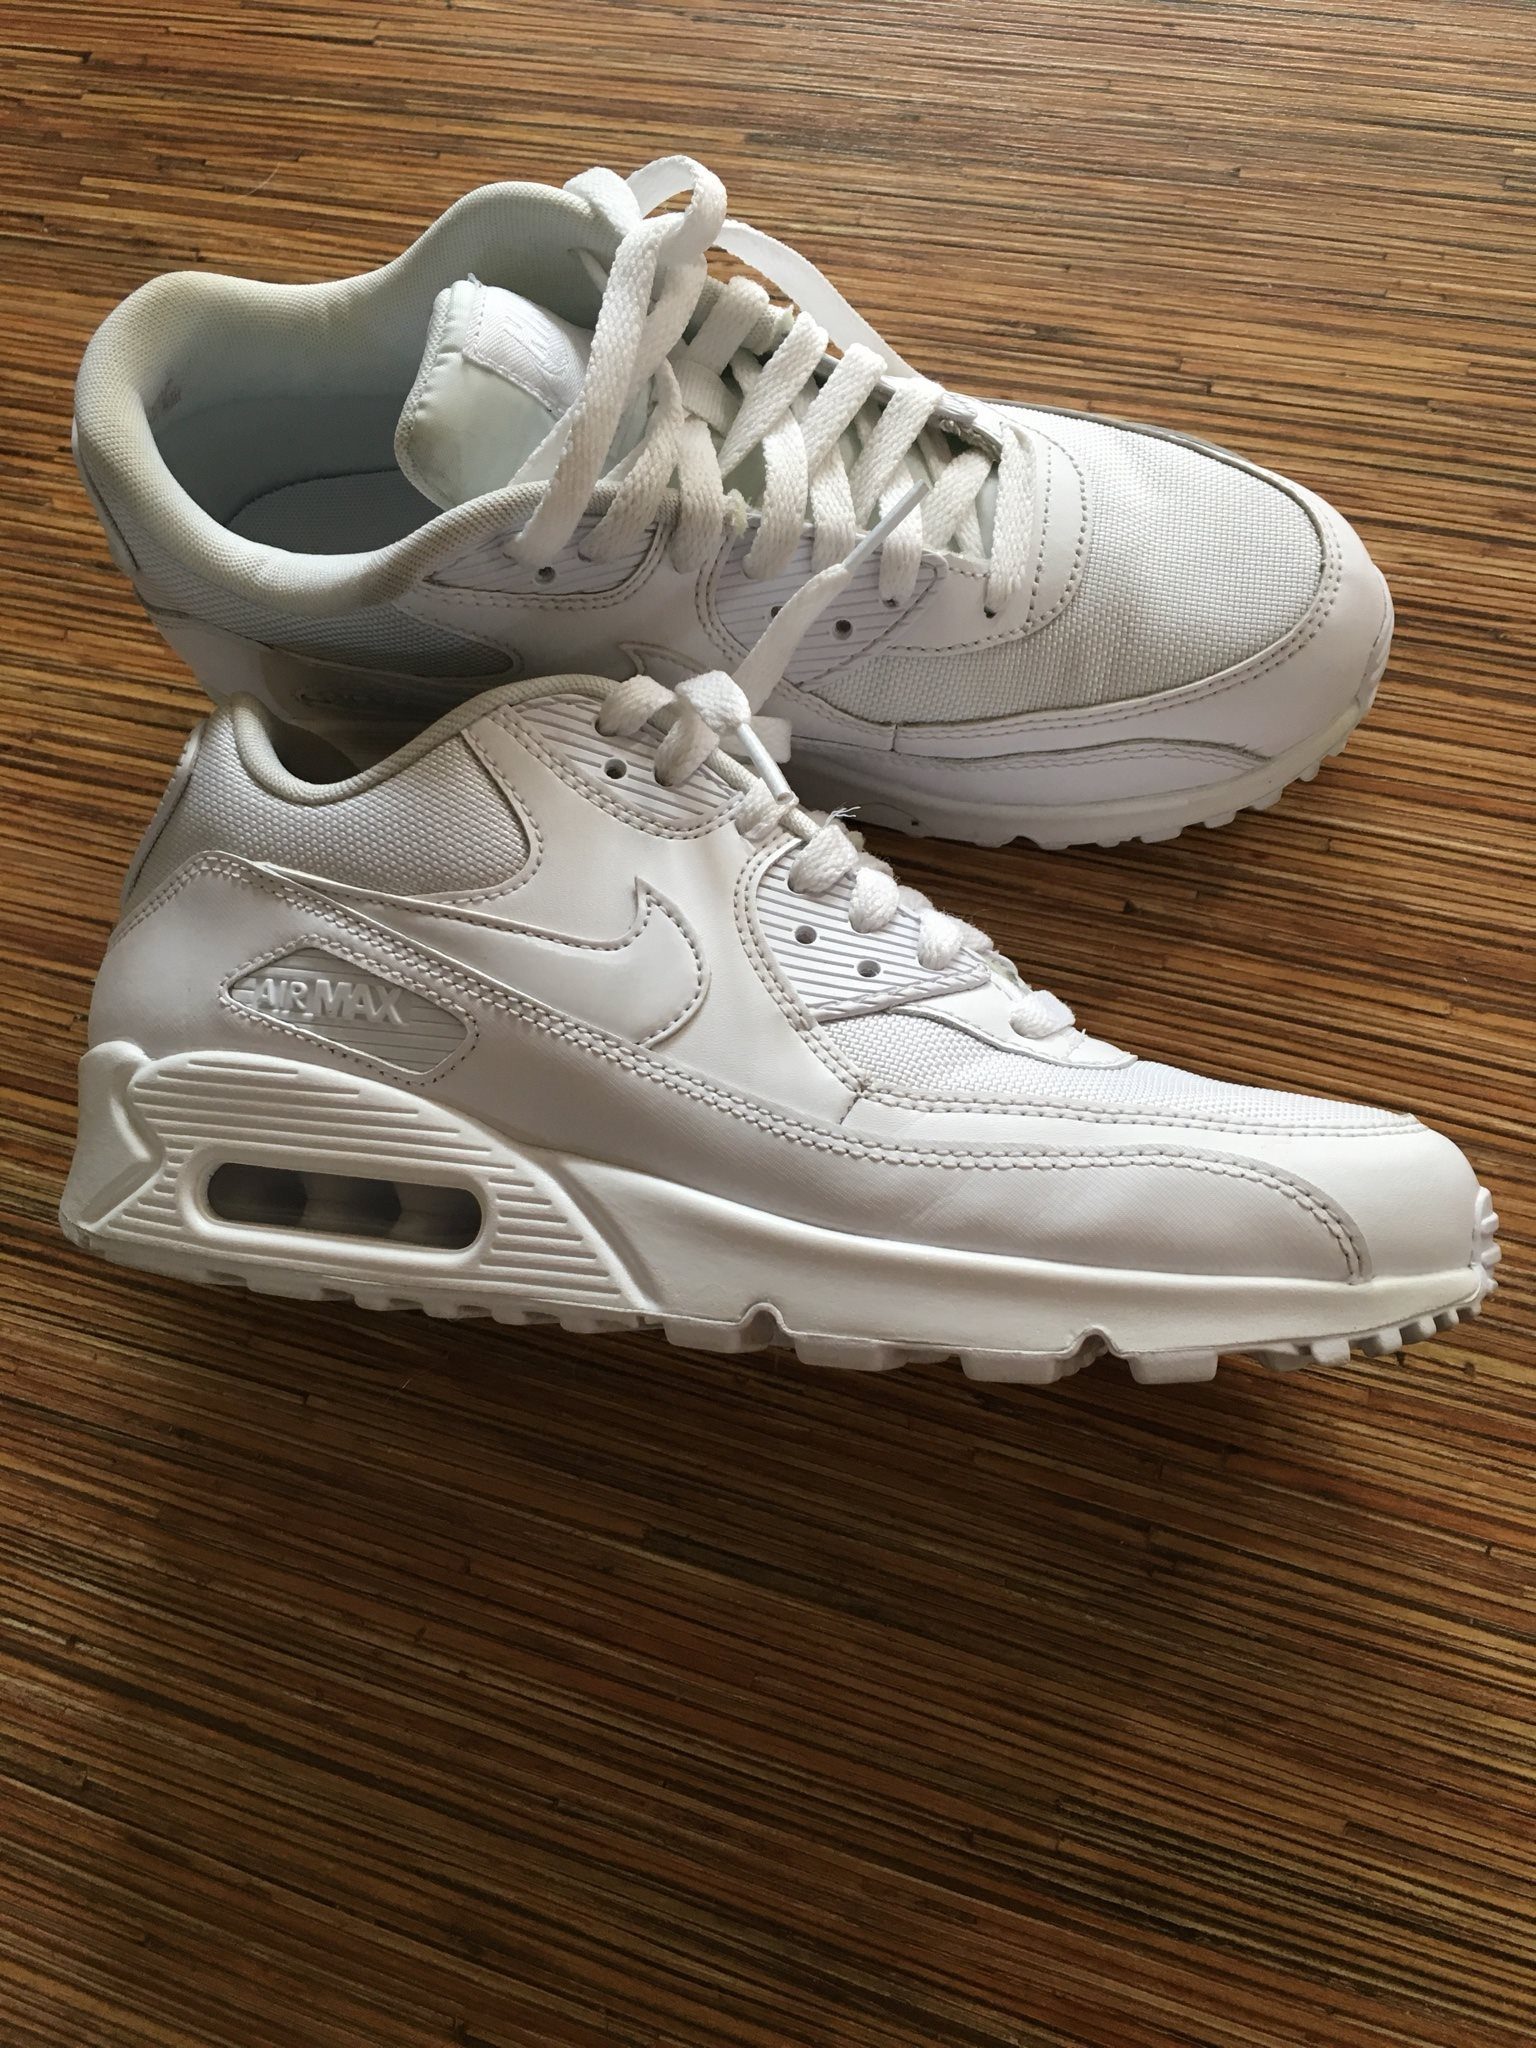 sports shoes e768b b1f93 shopping sko nike air max 90 mesh för barn storlek 1727 07c72 bcf48  where  to buy nike air max 90 klassiskt vita storlek us 7 9e682 e0759